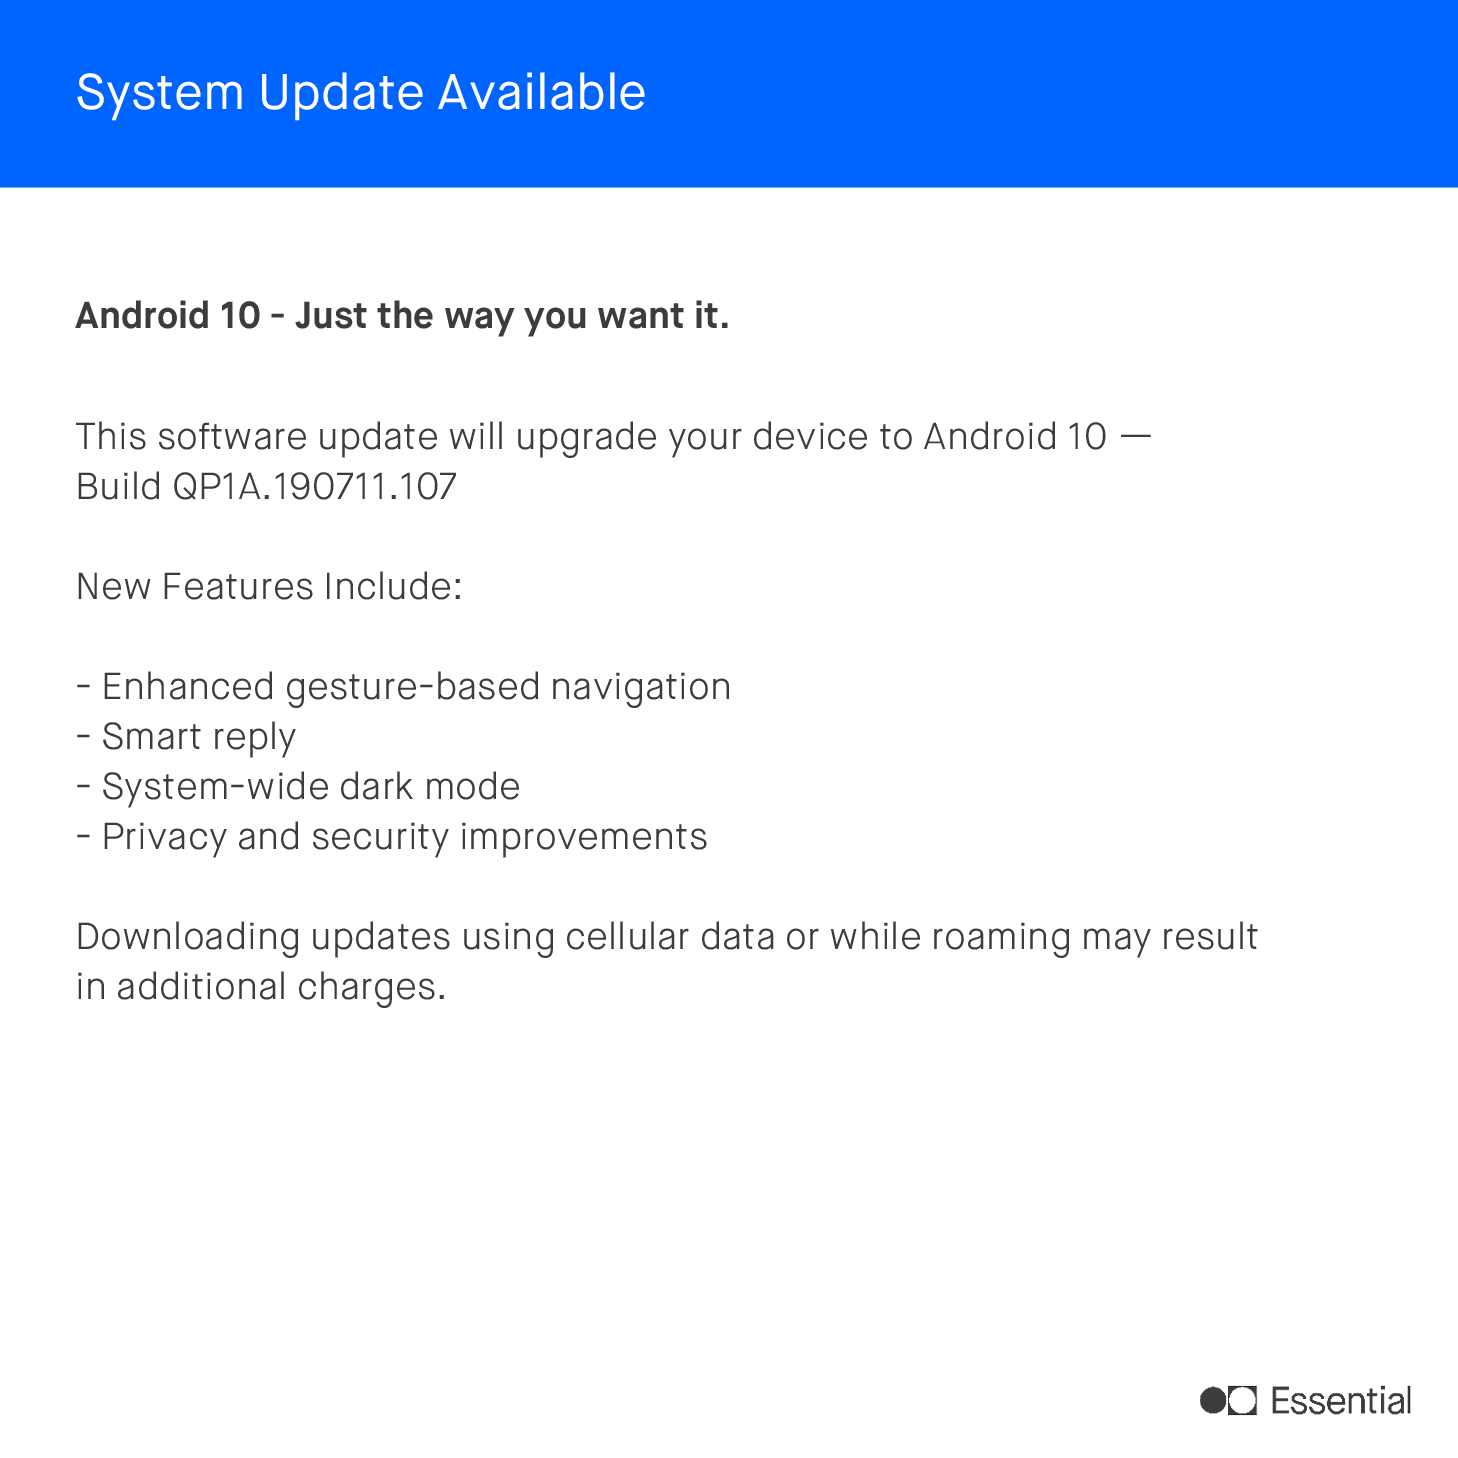 Essential Android 10 update